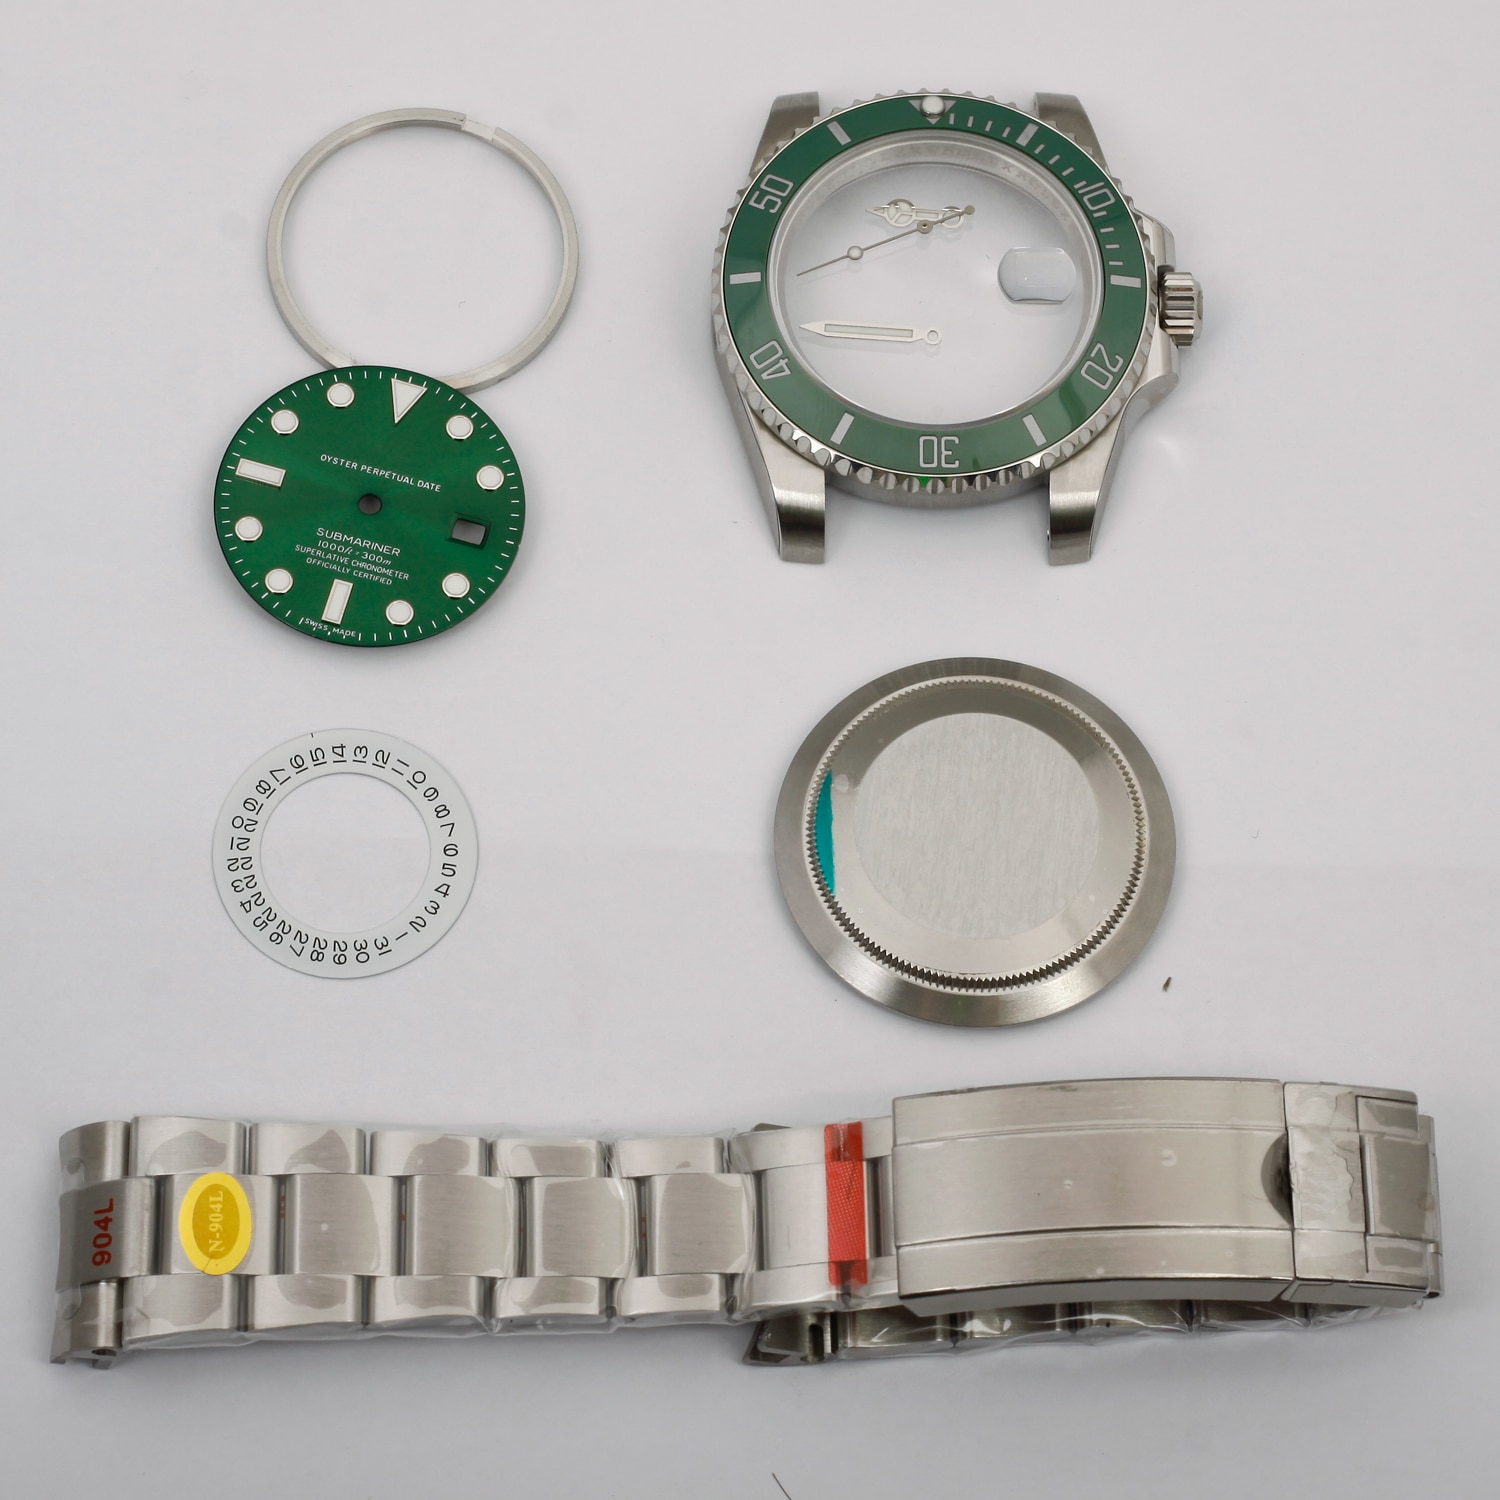 watch parts fit ETA 2836 2824 movement watch case kit N v10 904l steel green submariner style 40mm high quality parts